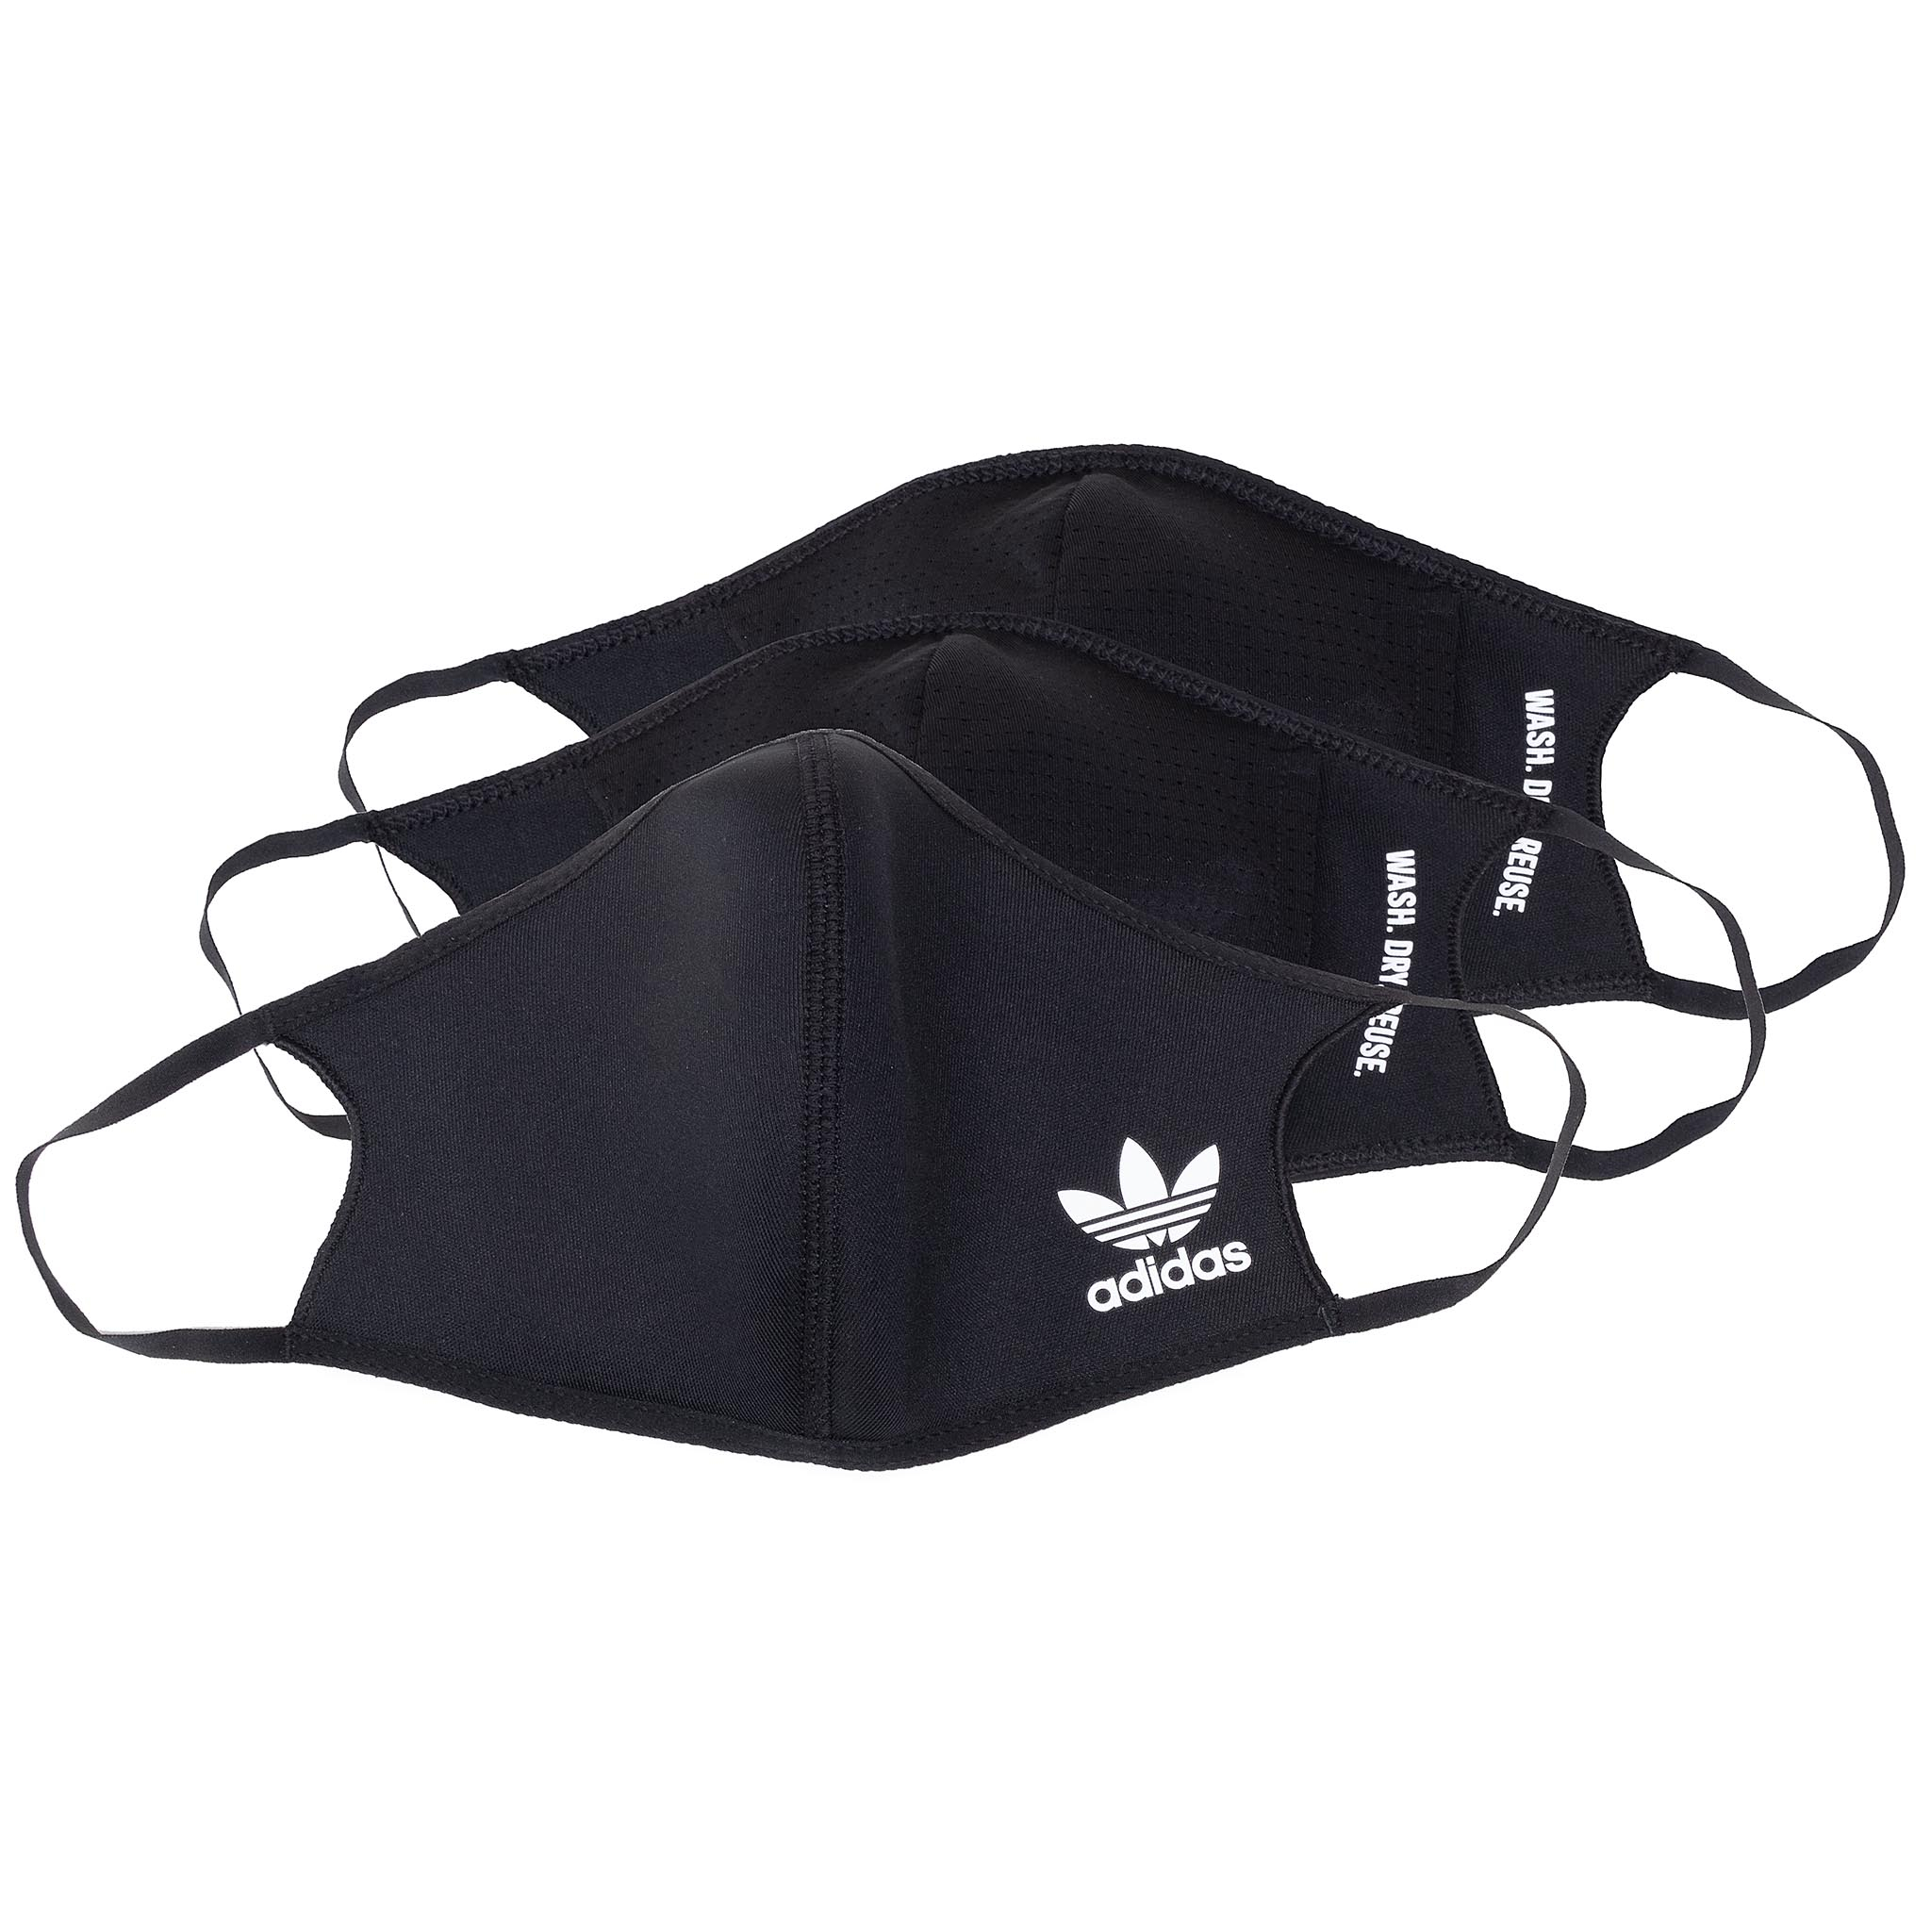 Image of 3er-Set Stoffmasken adidas - Face Cvr HB7851 Black